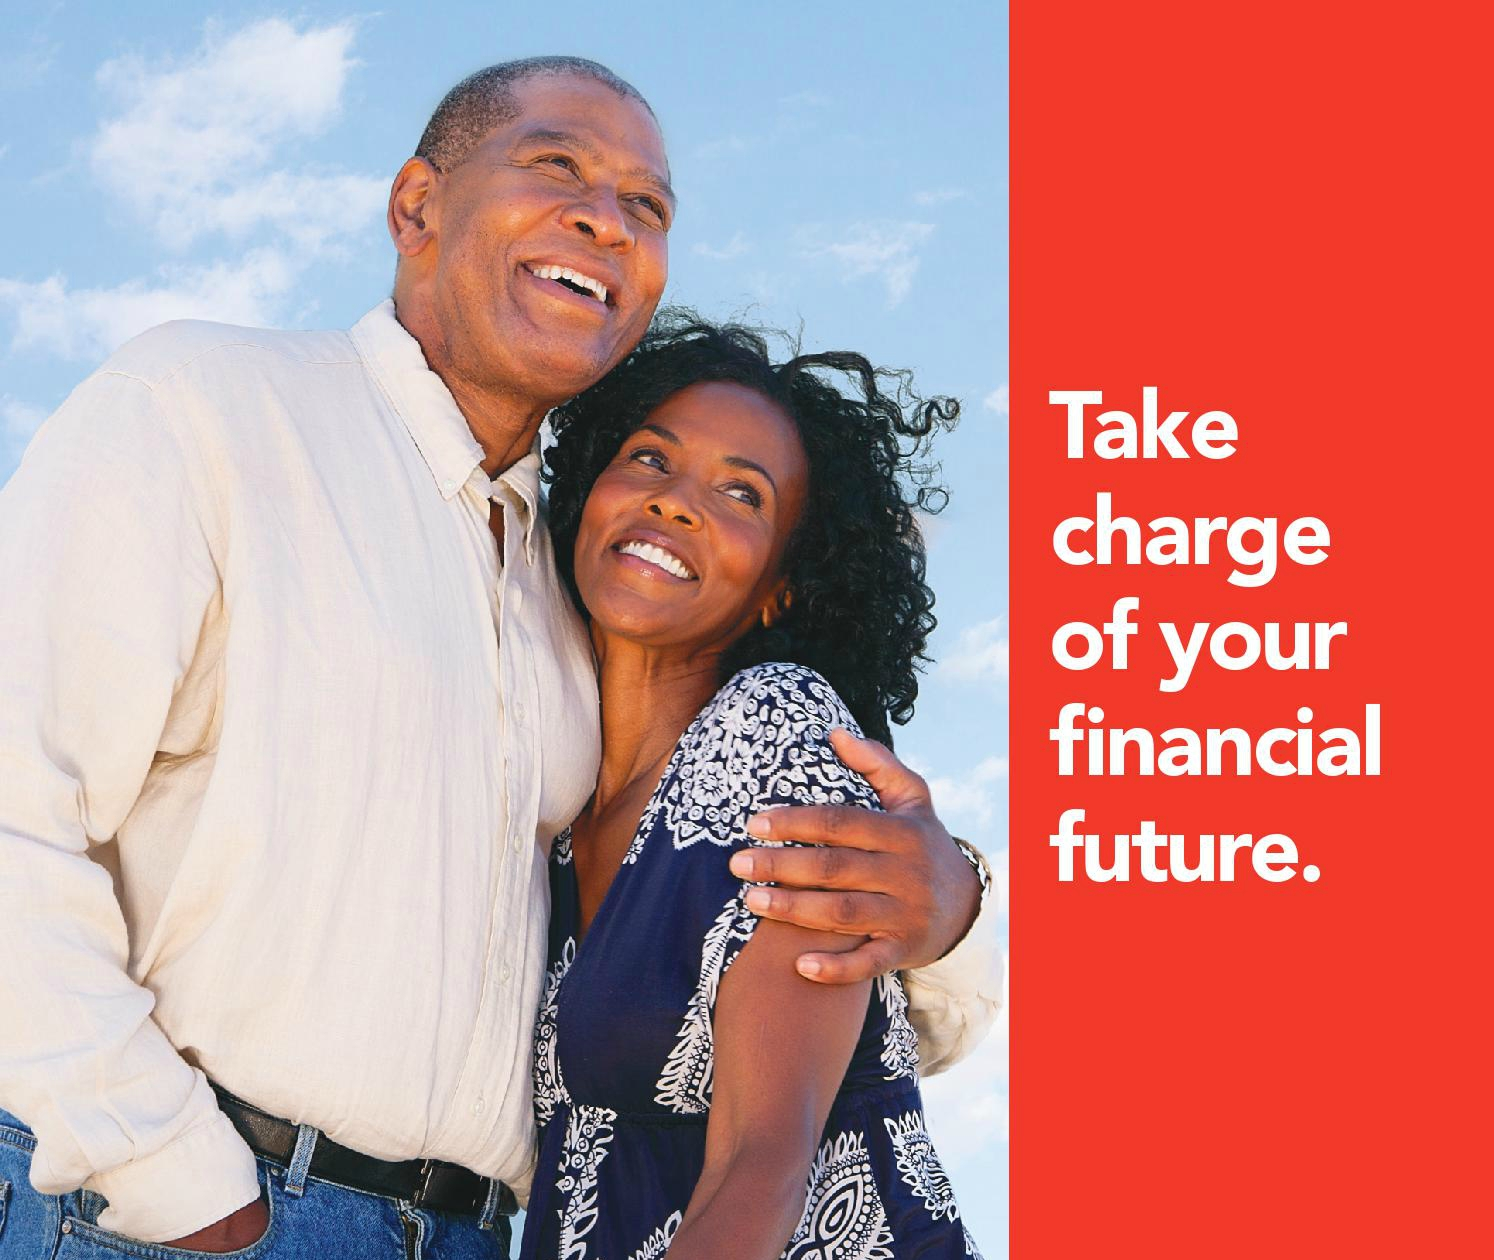 Join AARP Indiana for Take Charge of Your Financial Future: Back to Basics